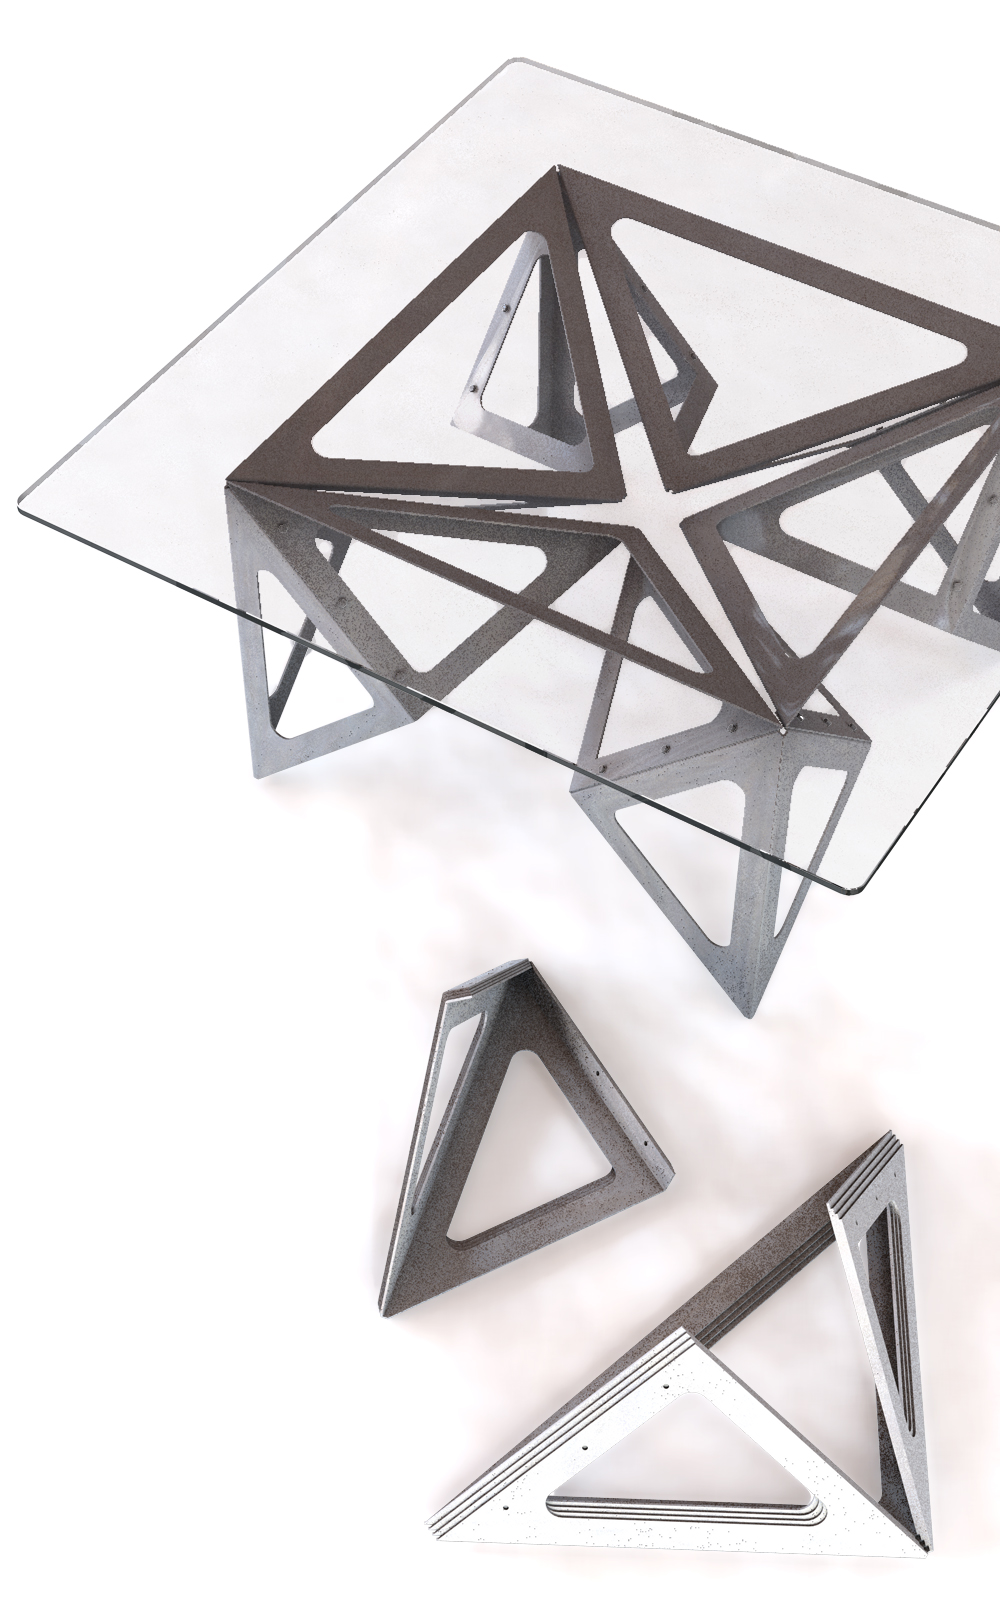 Coin-coin table inspired by origami